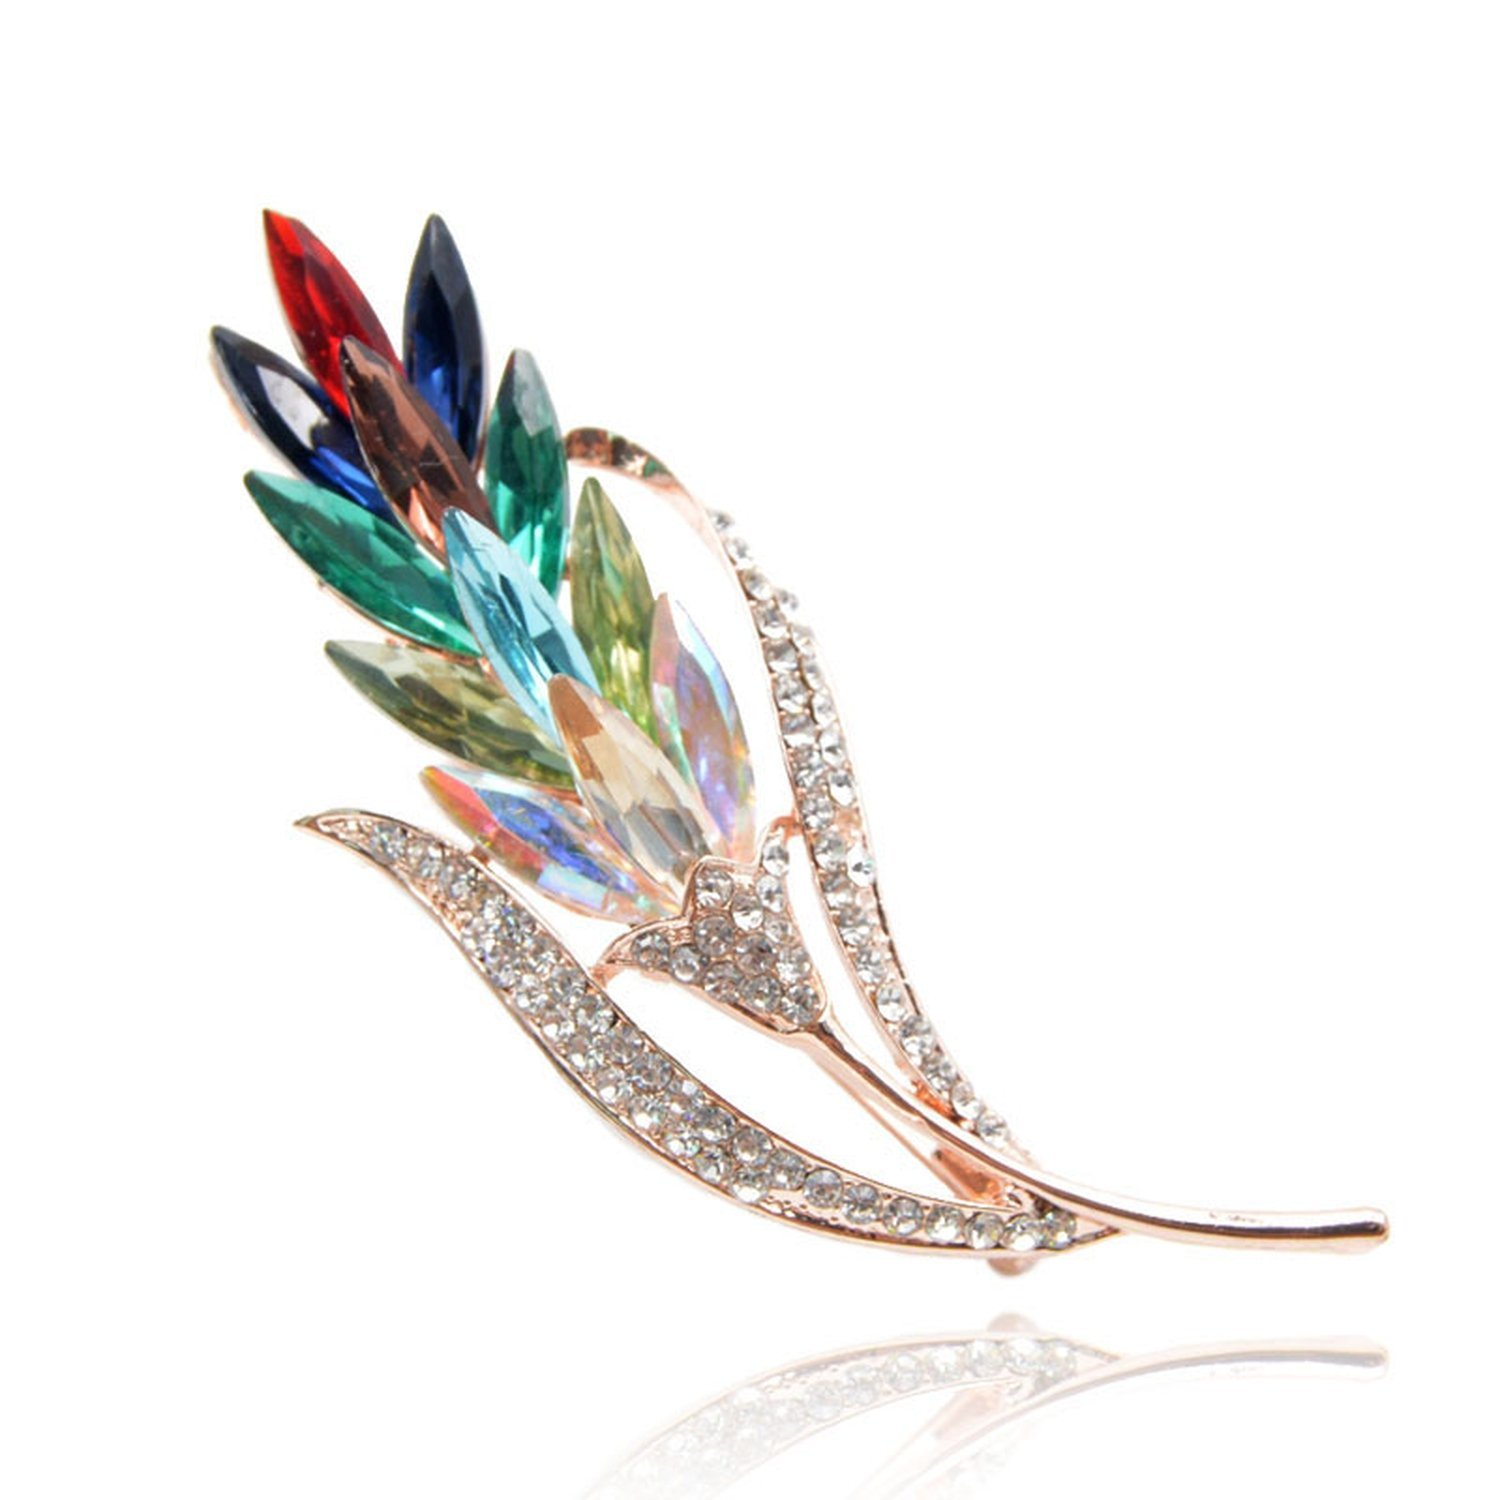 Crystal Wheat Brooches For Women Rhinestone Brooch Pin Coat Dress Corsage Flower Style,Mix Color by Baolustre (Image #1)